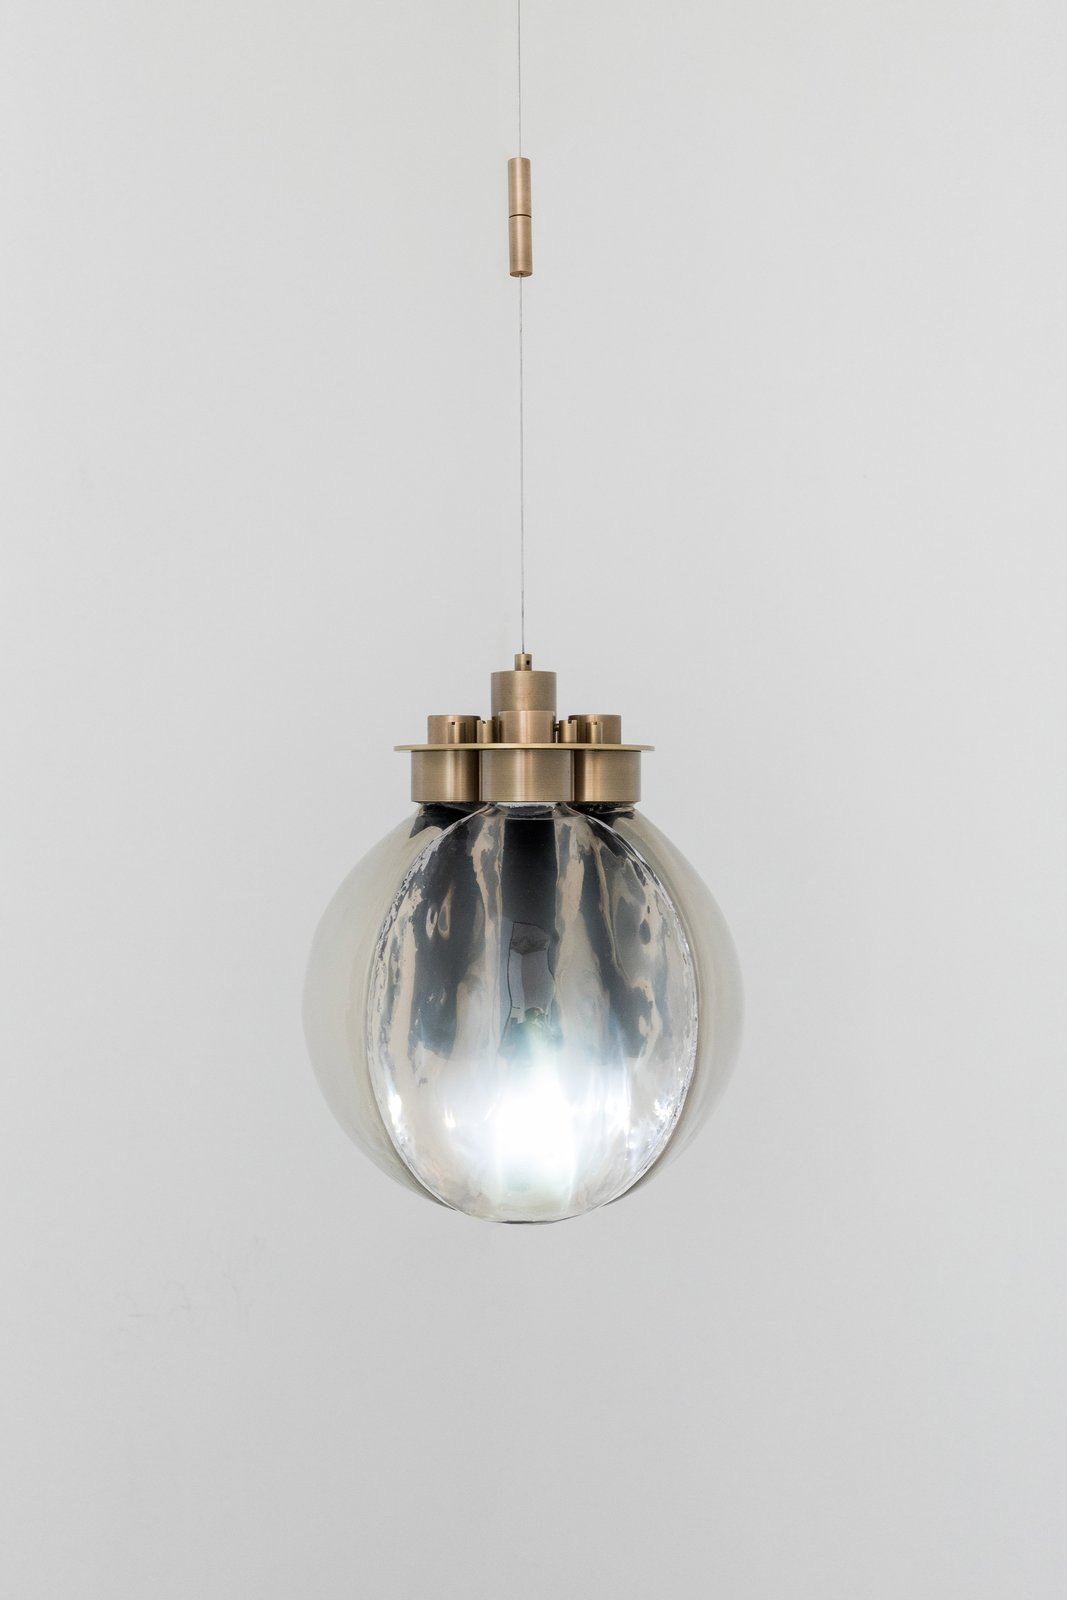 Spark of Life by Teresa van Dongen  Photo 2 of 9 in 9 Innovative Light Fixtures That Combine Art, Design, and Technology